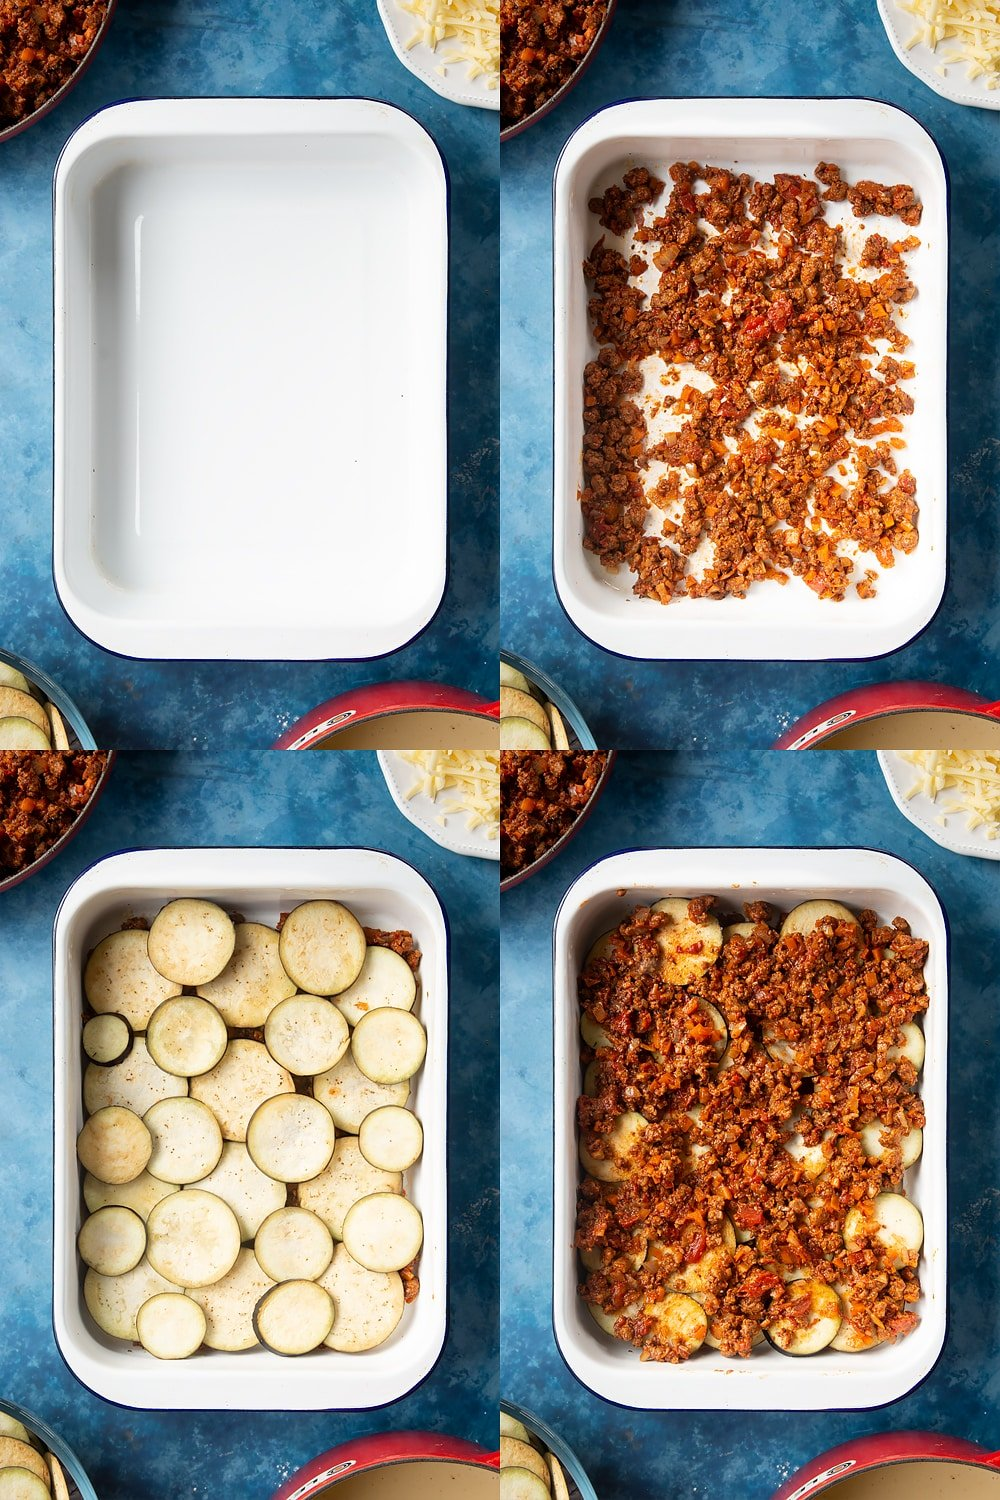 collage of four photos of overhead shots of a large white roasting tray, mince on a large white roasting tray, aubergine slices on a large white roasting tray, and mince on top of aubergine on a large white roasting tray